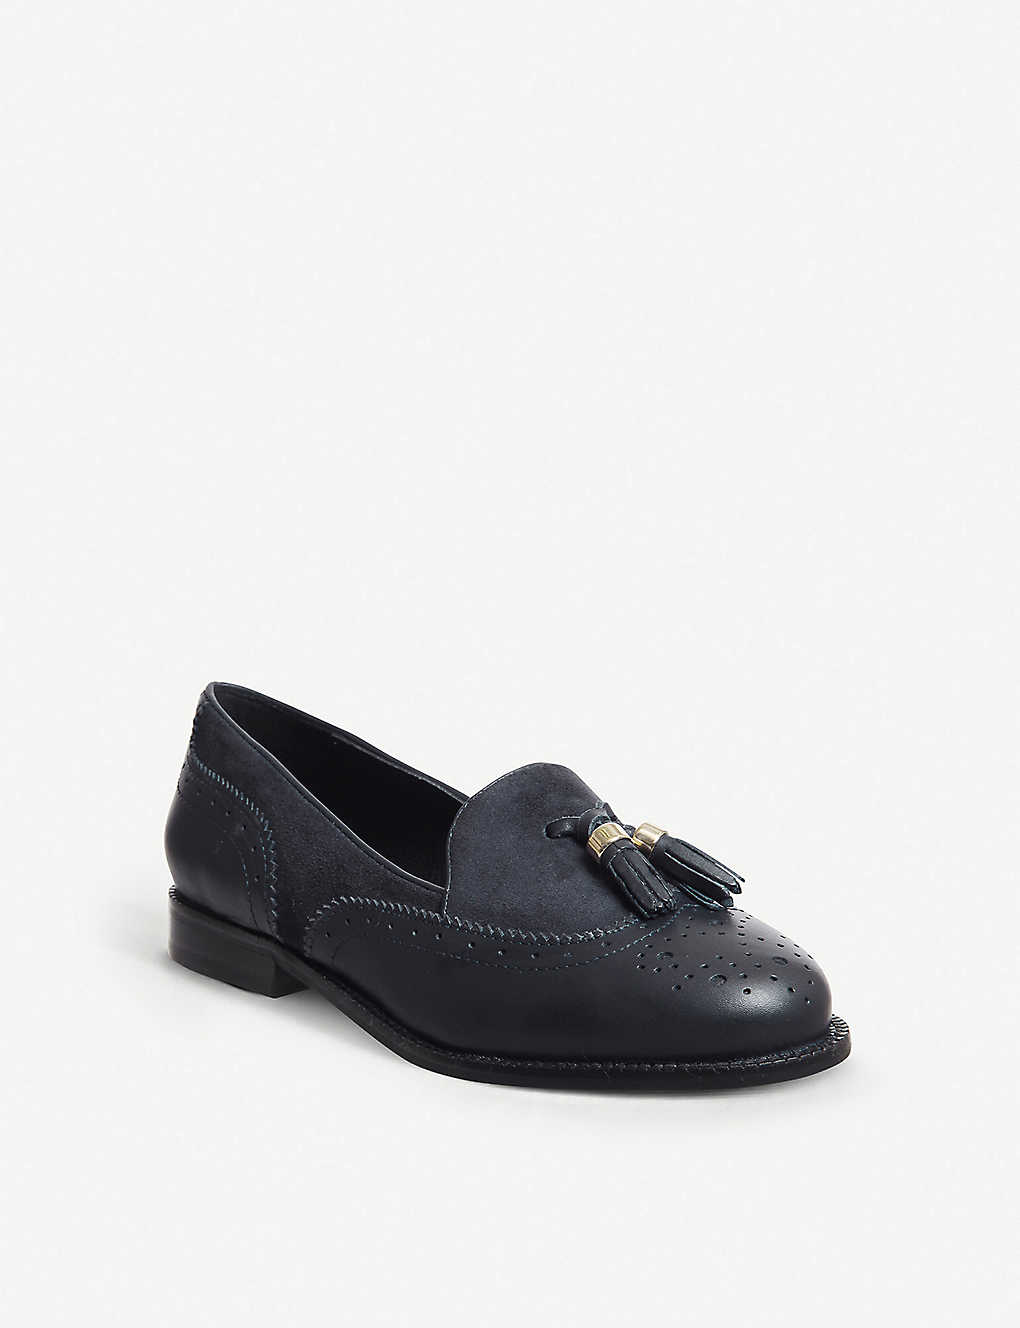 1d4b0569ae4 ... Familiar tassel-detail patent leather loafers - Navy leather suede ...